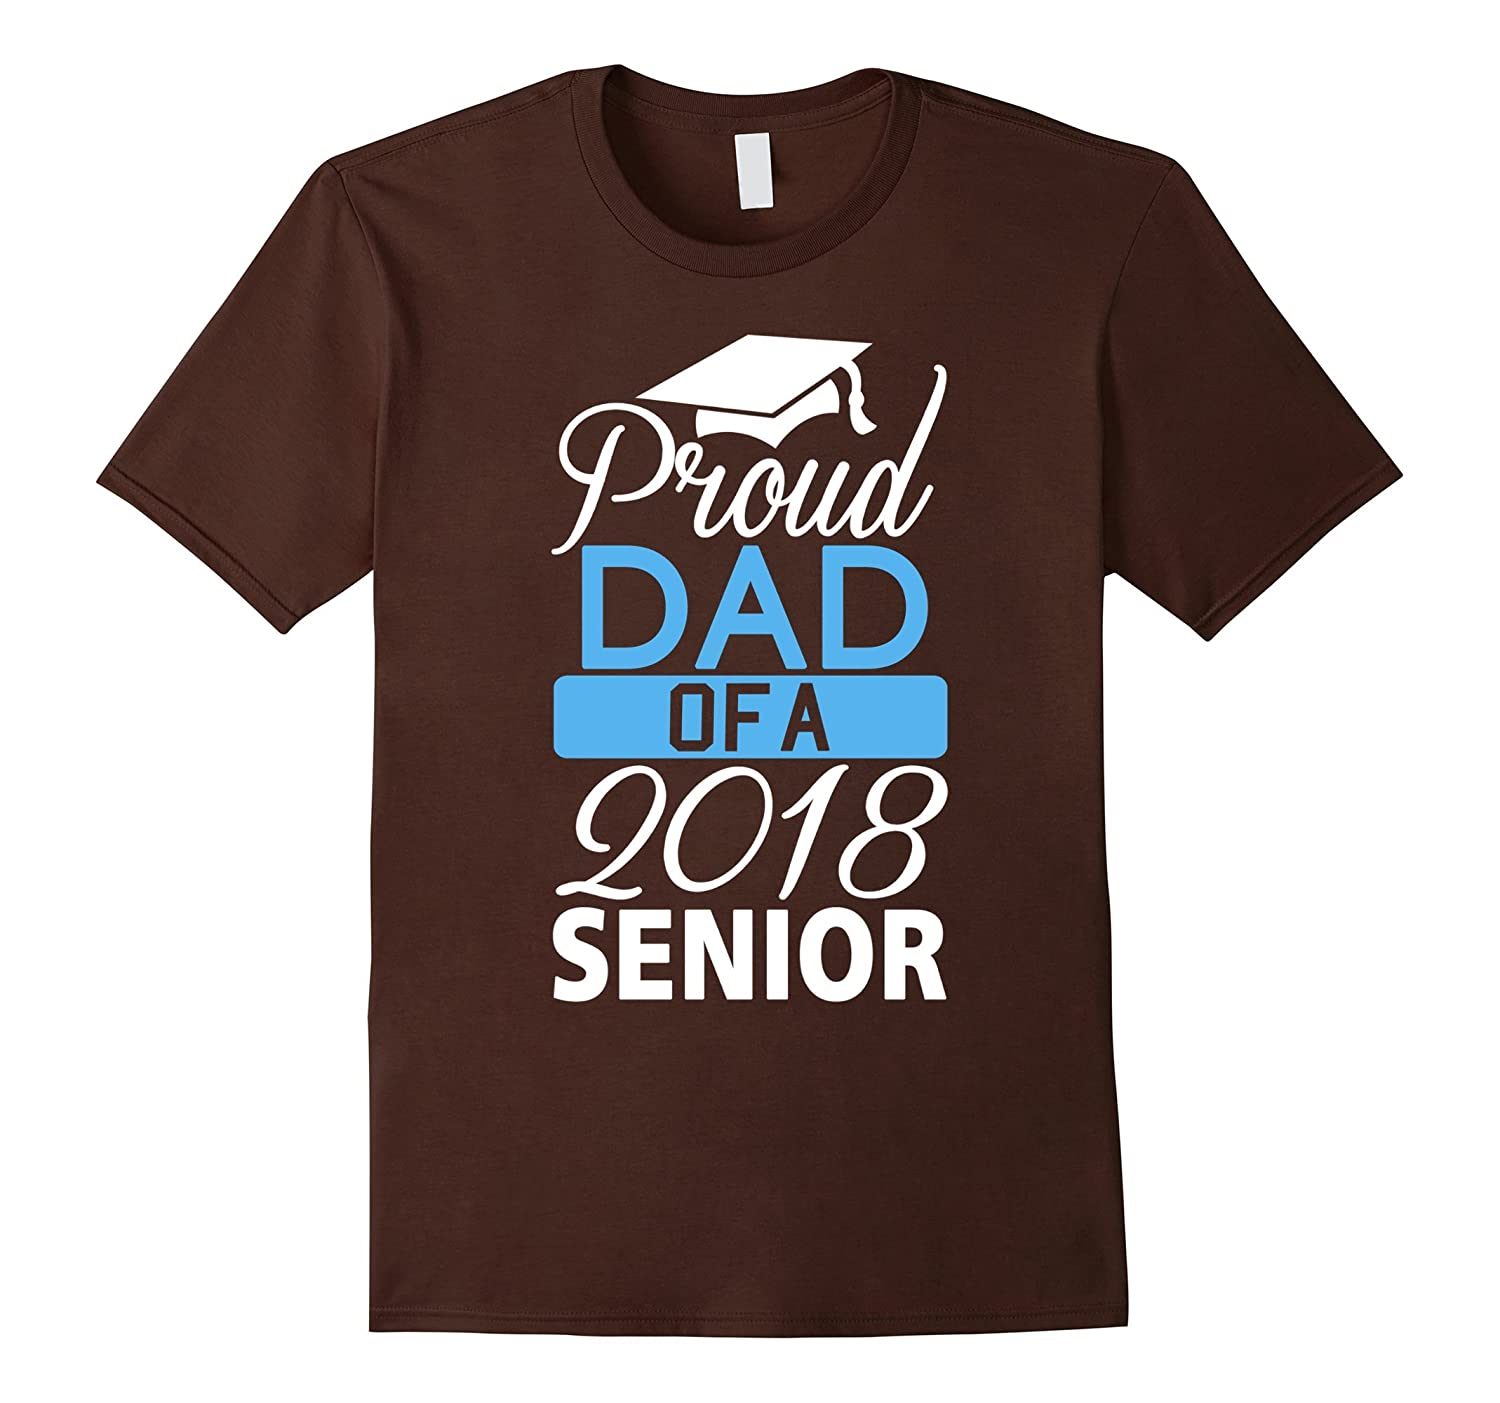 Mens Proud Dad of a 2018 Senior T-shirt